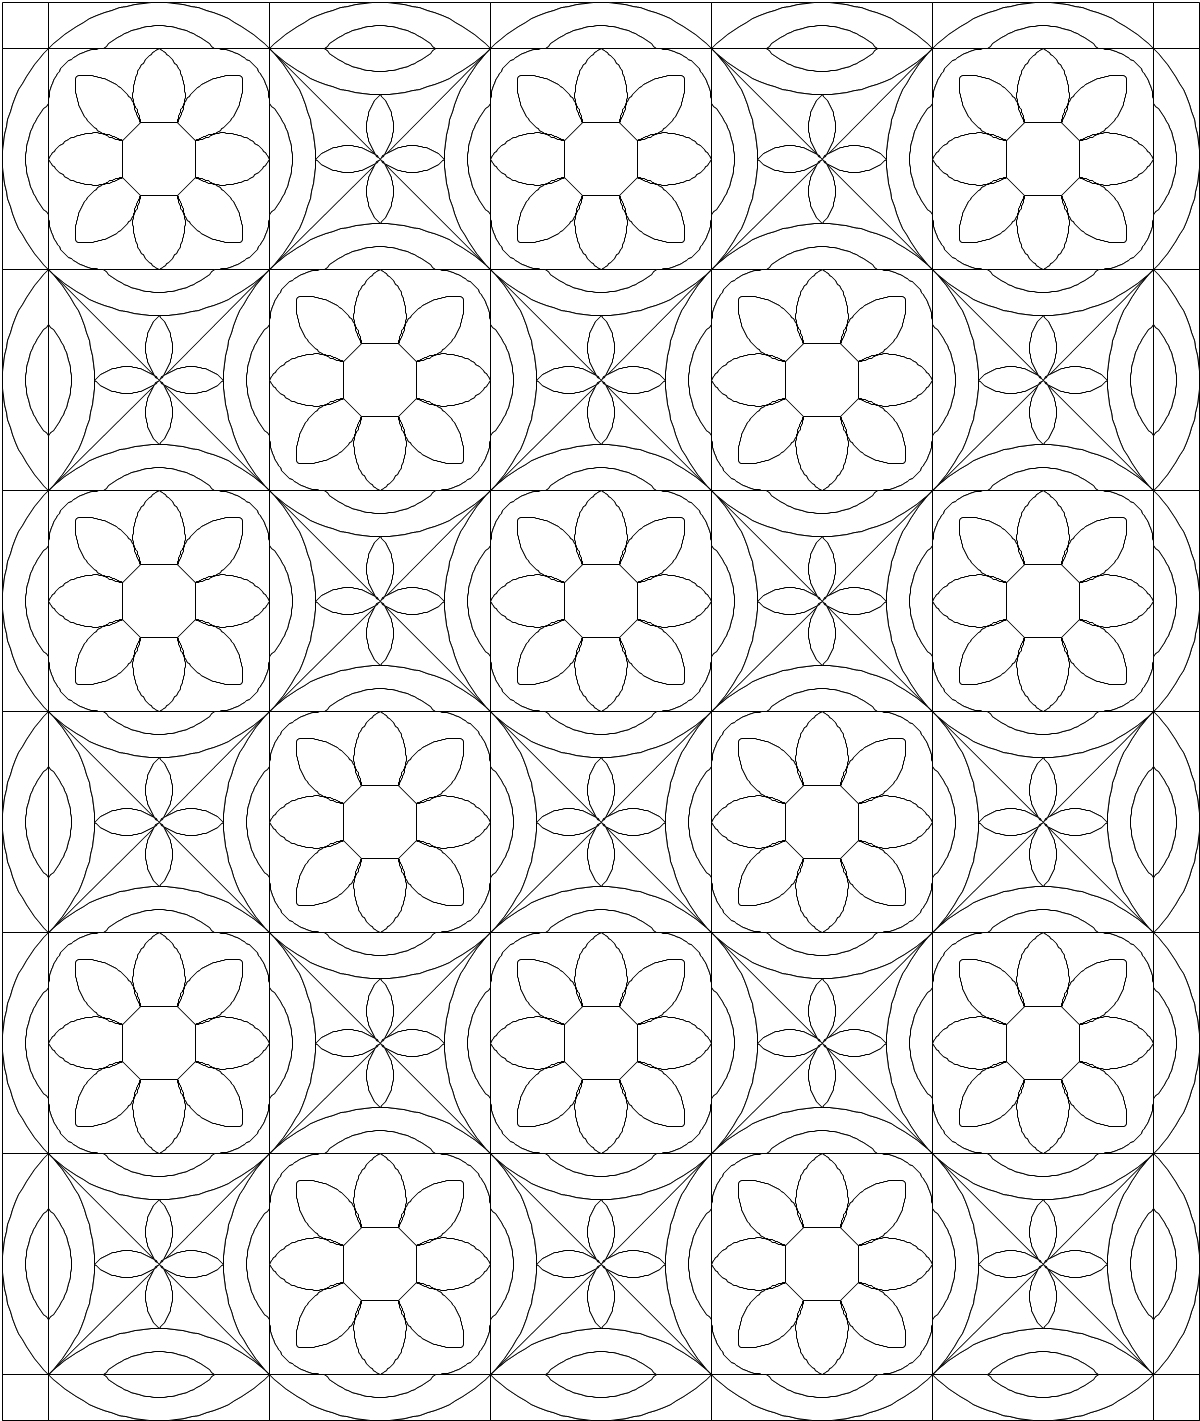 quilt coloring pages - photo#39